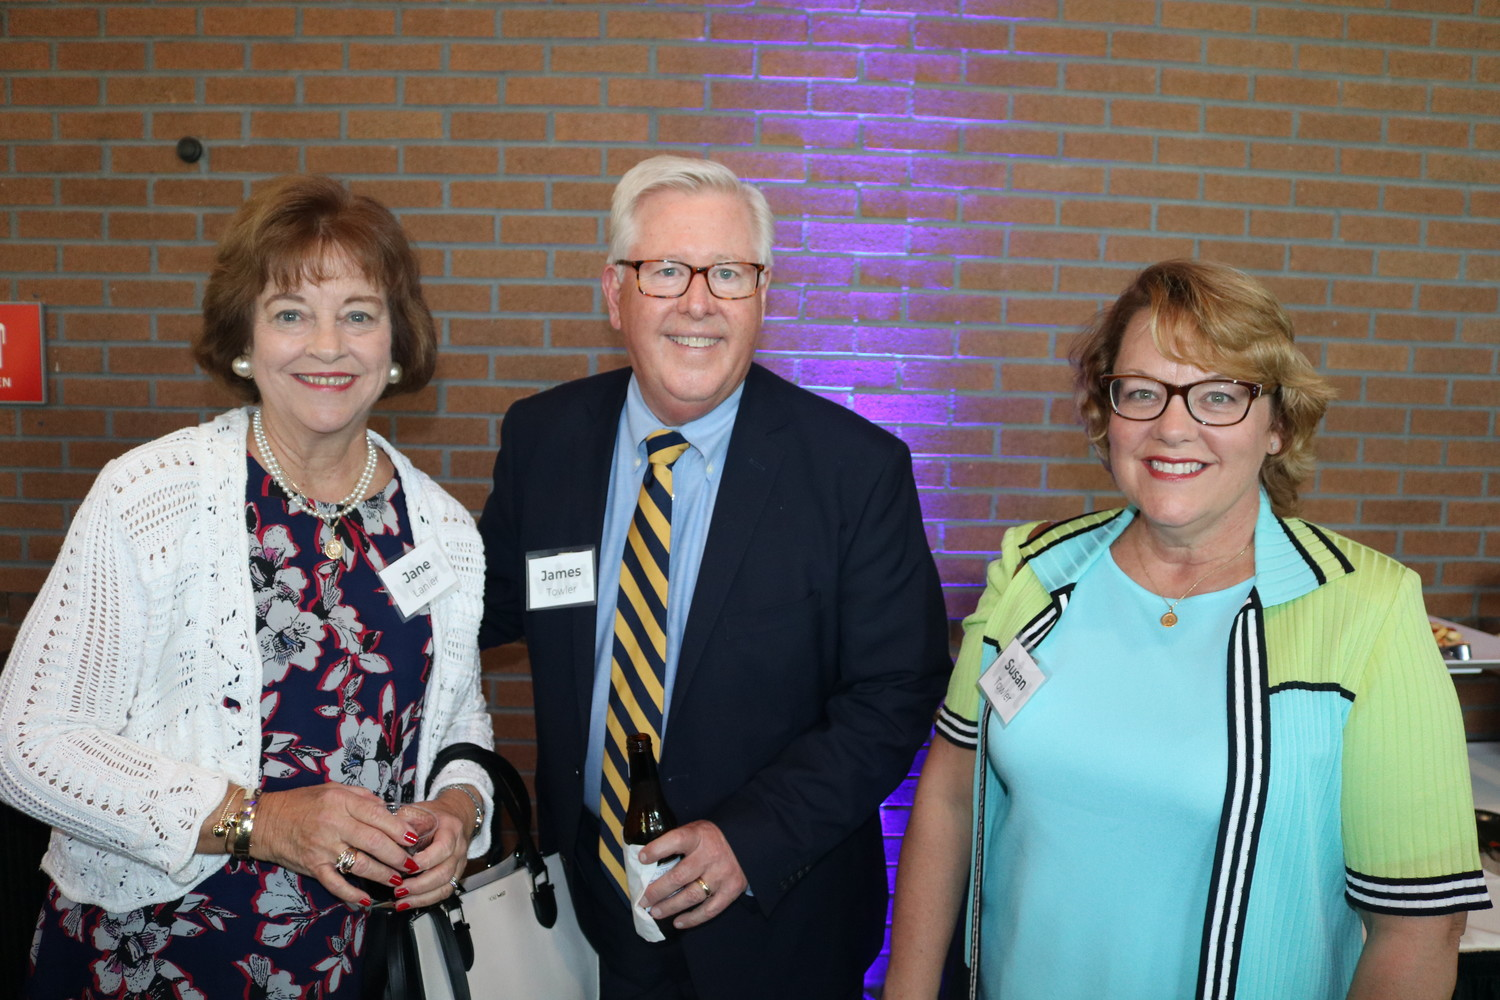 Jane Lanier and James Towler of St. Vincent's Healthcare and Susan Towler of Florida Blue